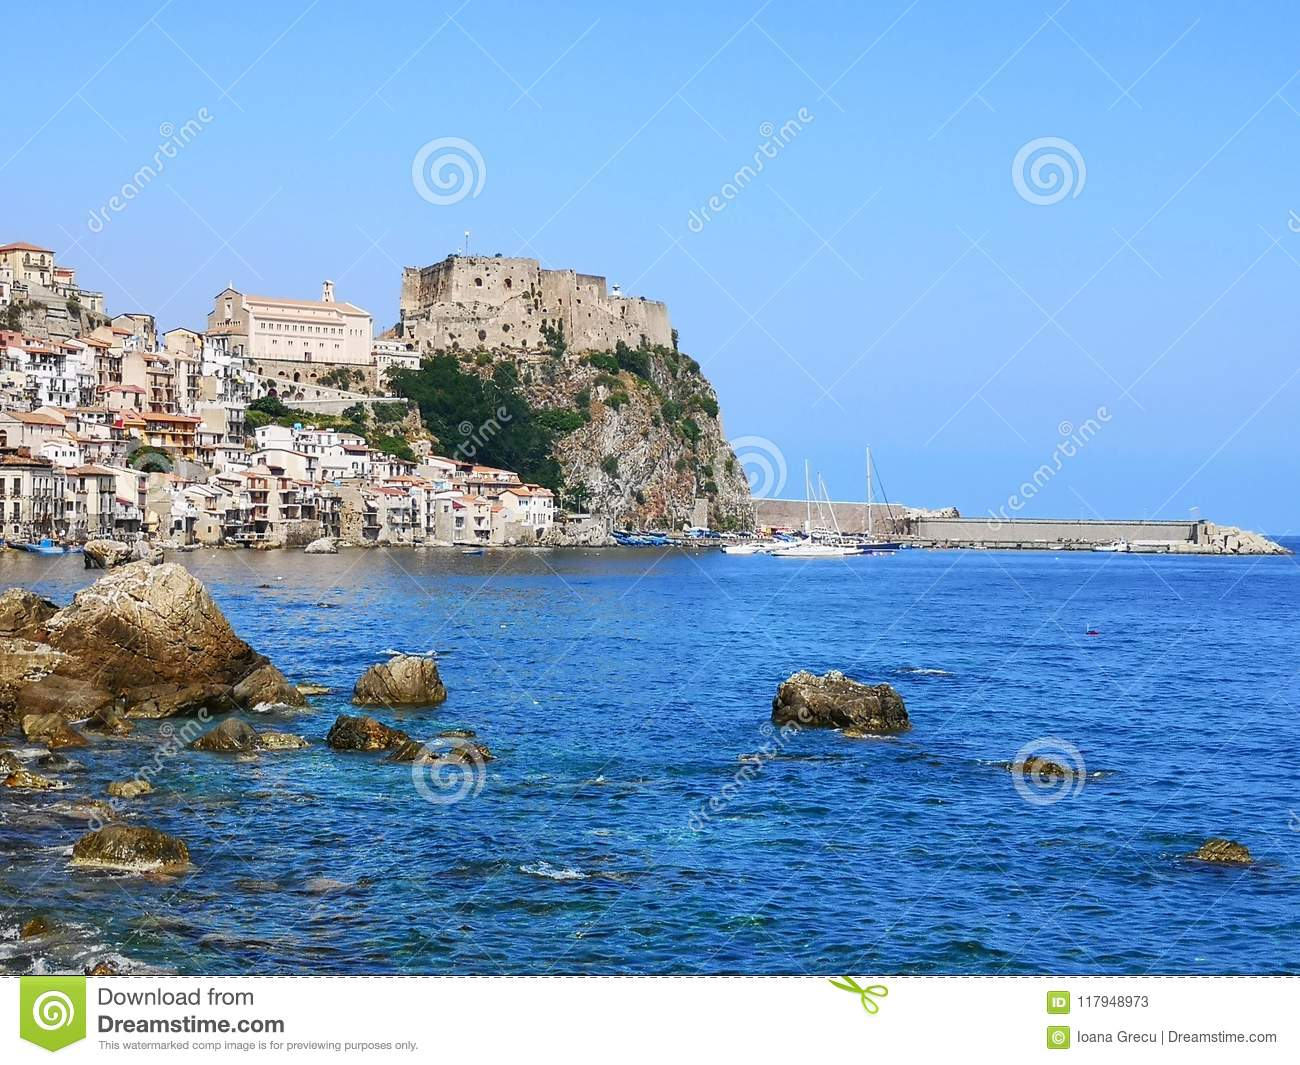 Chianalea at Scilla, Italy